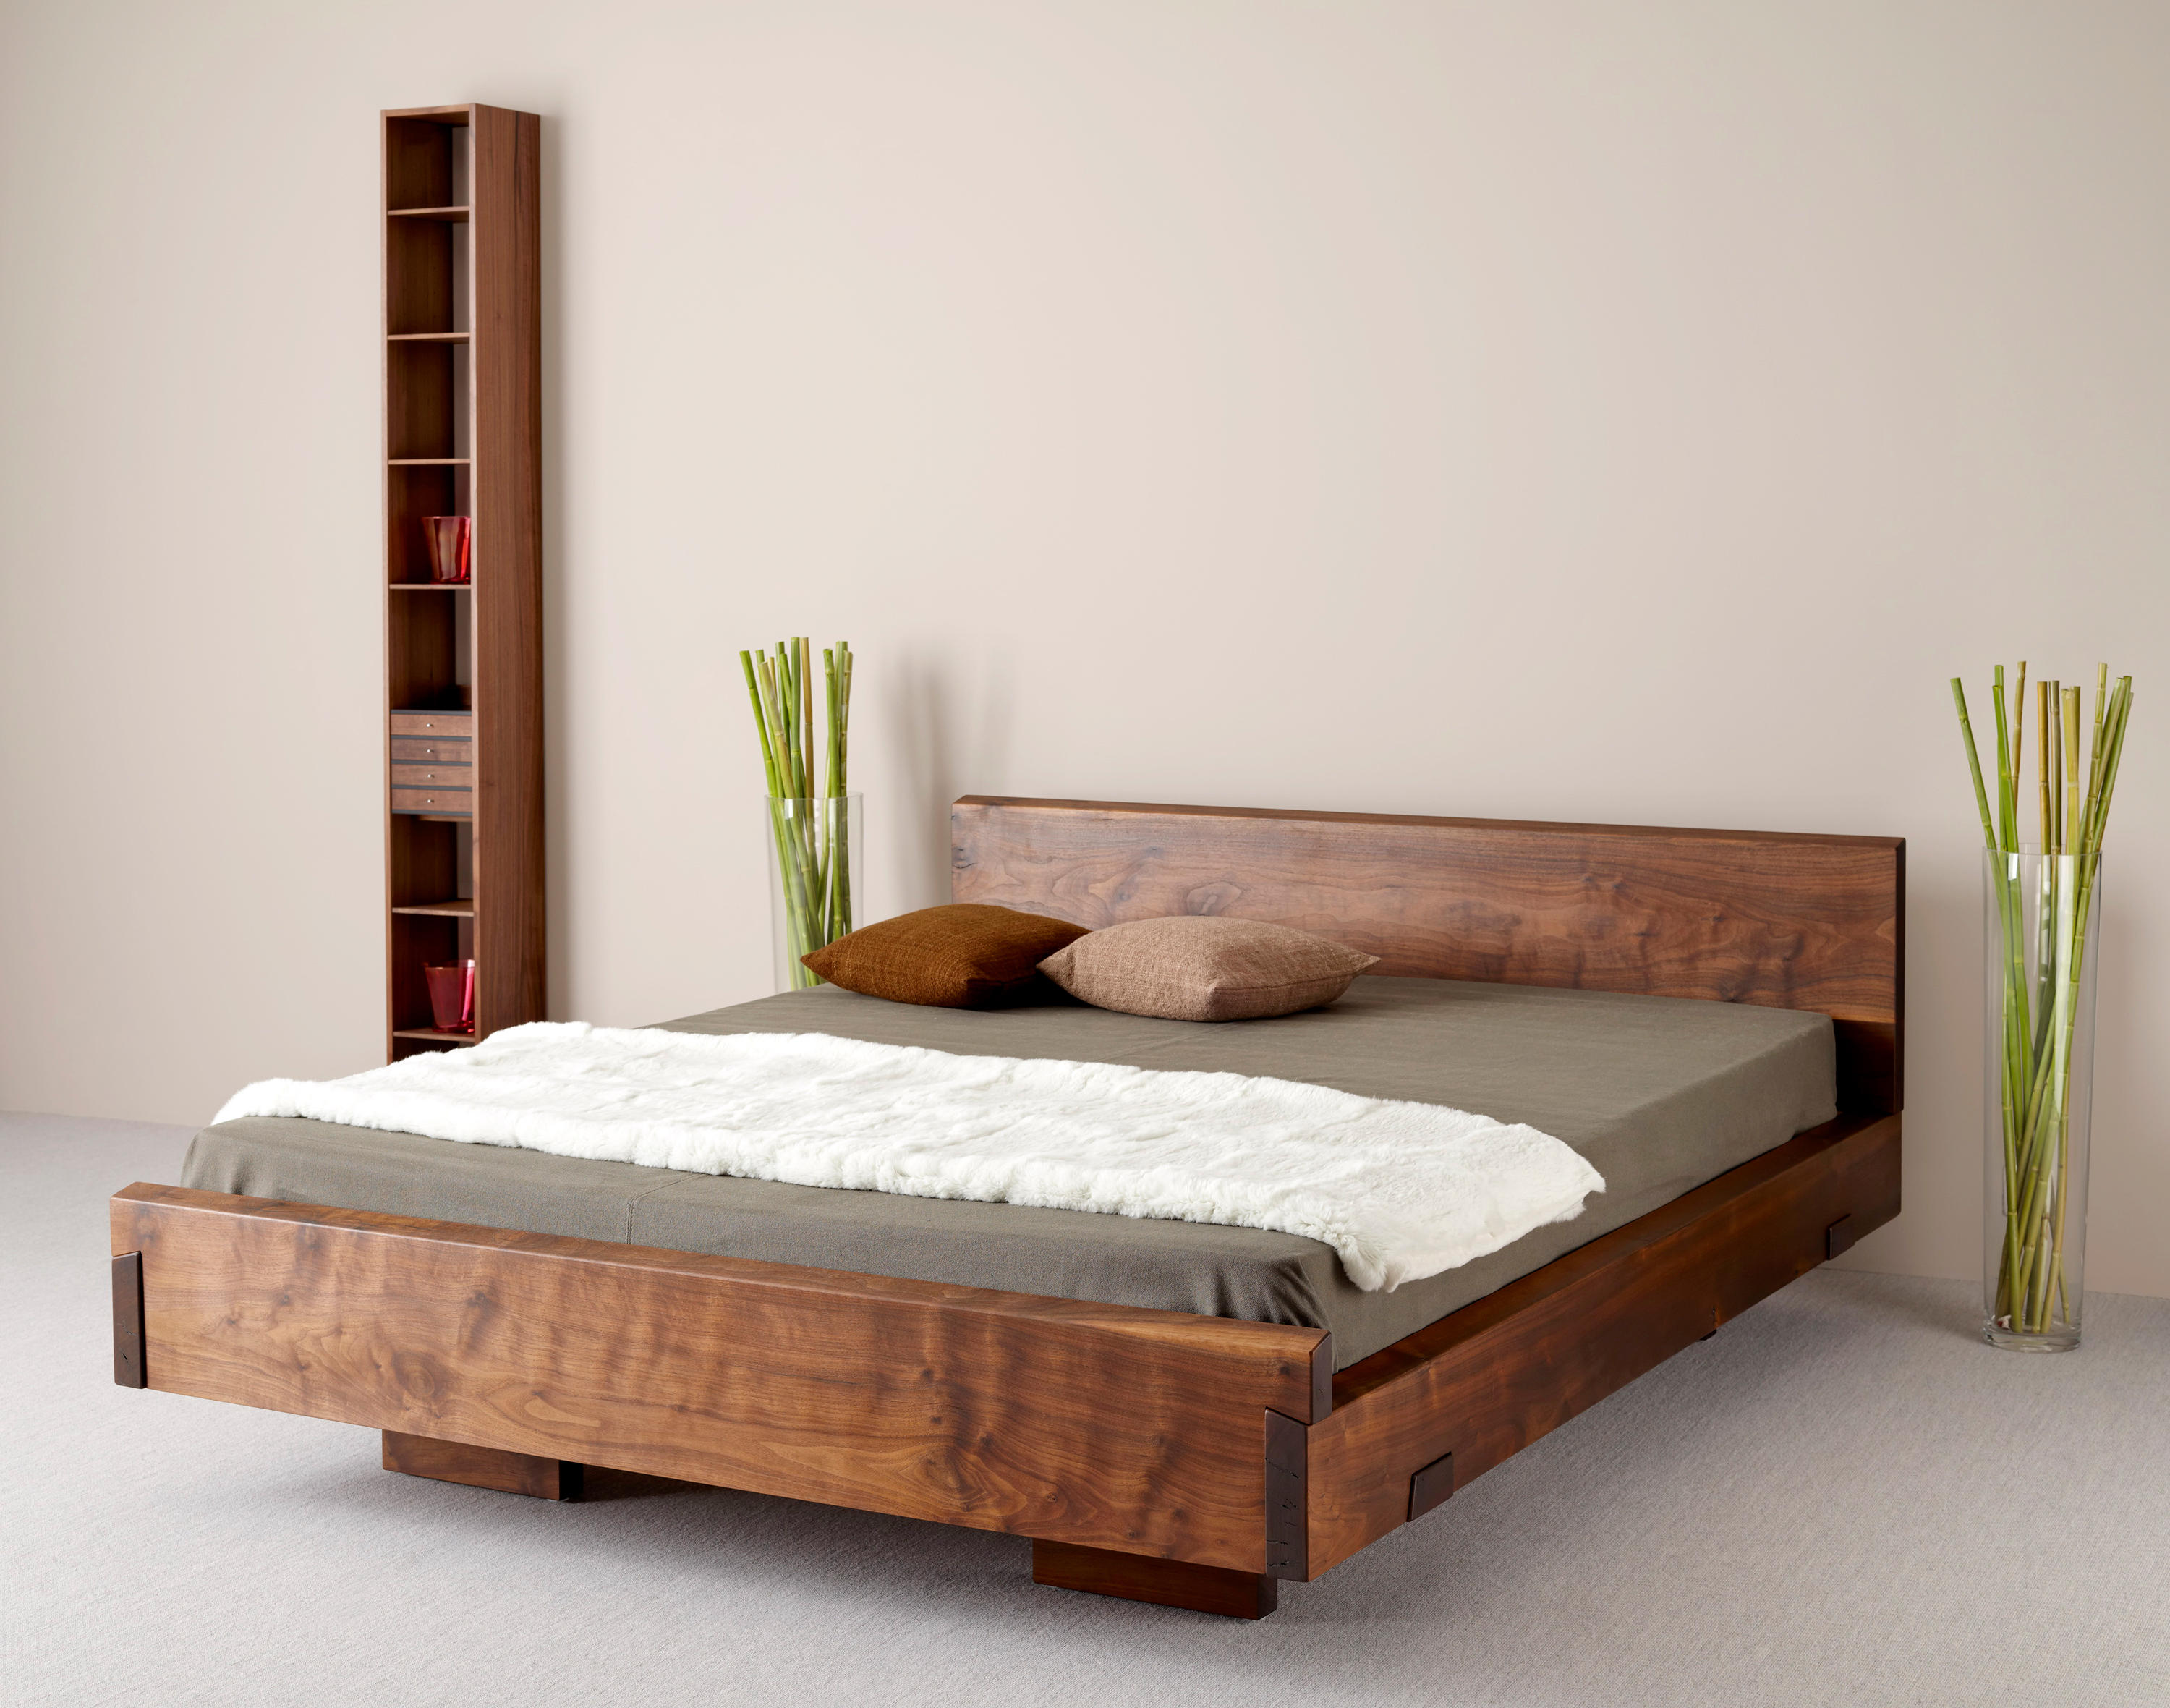 Ign timber night double beds from ign design for Bed design photos